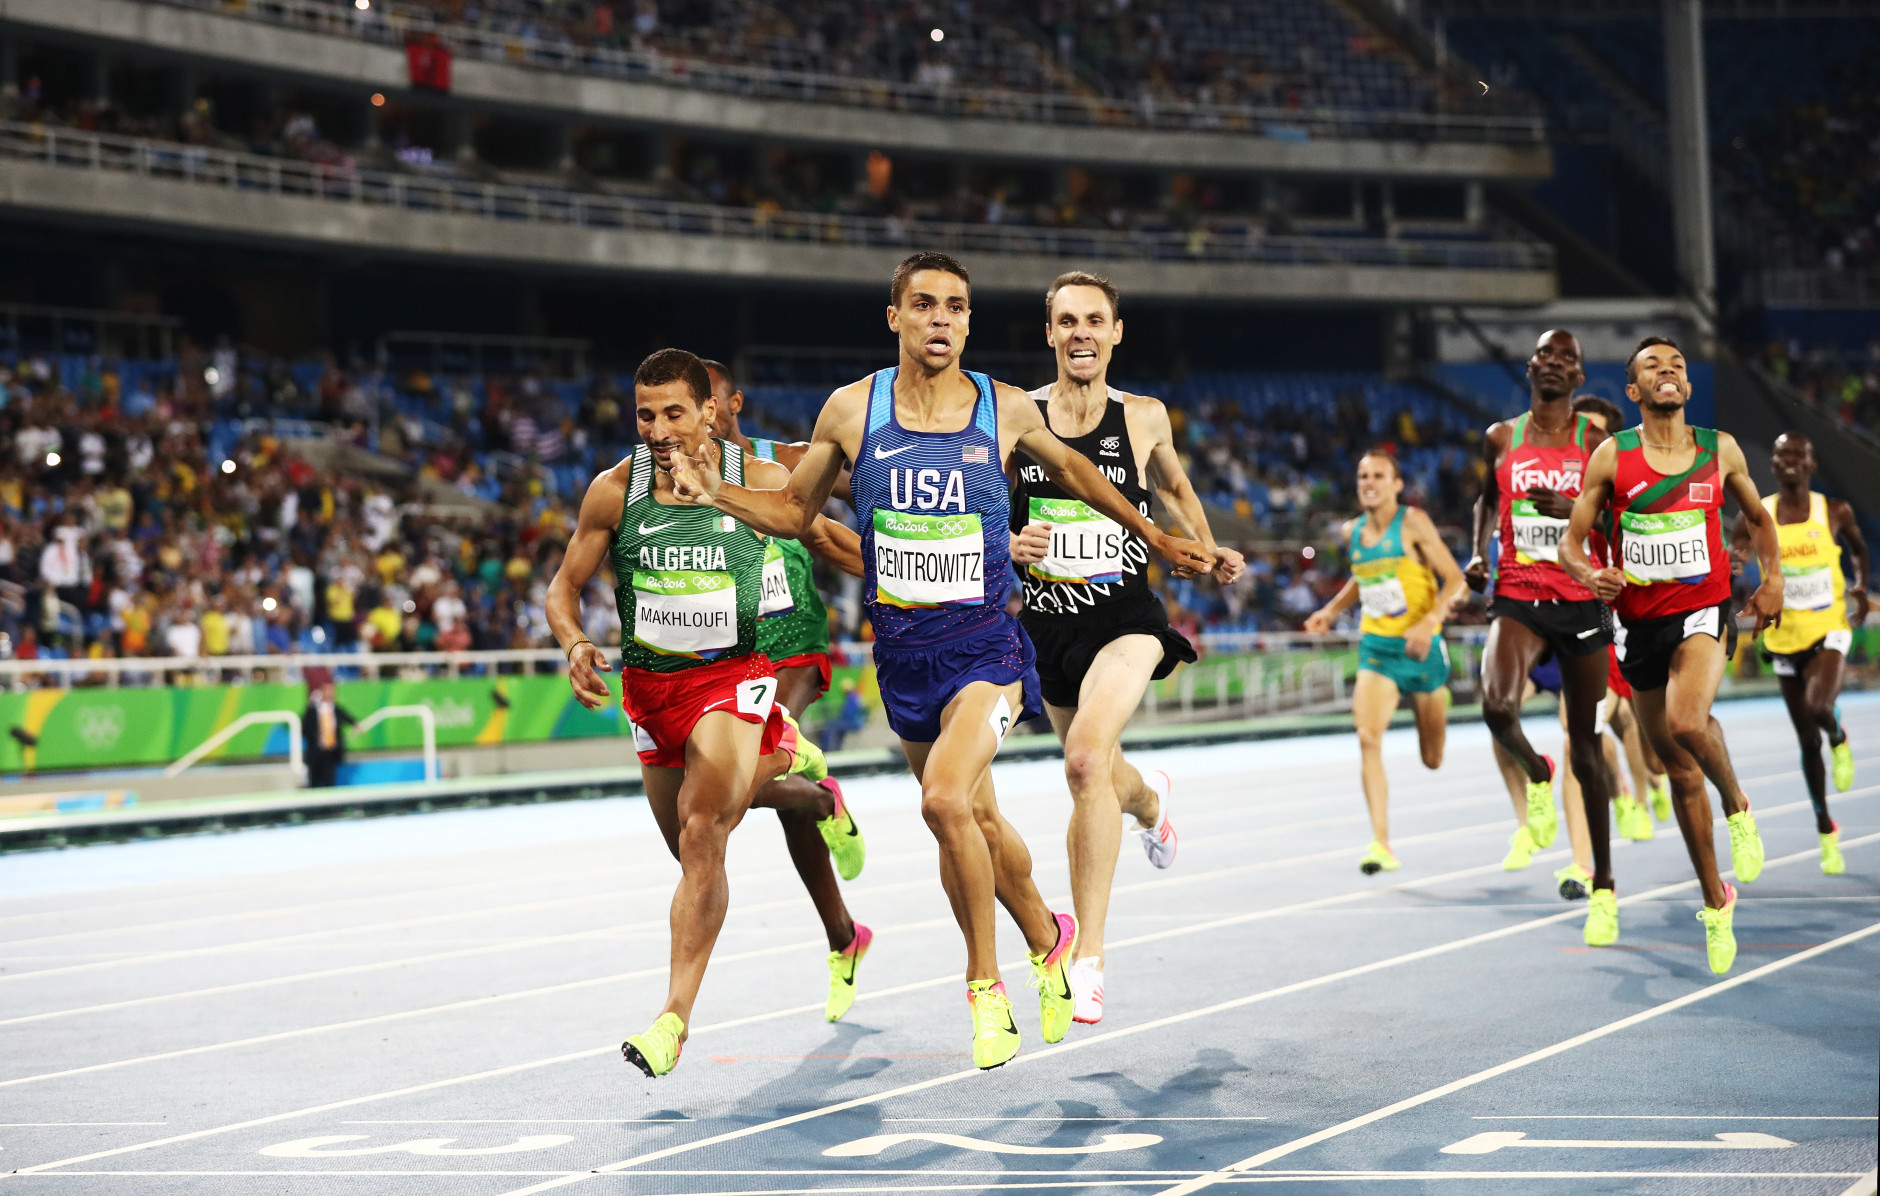 RIO DE JANEIRO, BRAZIL - AUGUST 20:  Matthew Centrowitz of the United States reacts after winning gold in front of Taoufik Makhloufi of Algeria and Nicholas Willis of New Zealand in the Men's 1500 meter Final on Day 15 of the Rio 2016 Olympic Games at the Olympic Stadium on August 20, 2016 in Rio de Janeiro, Brazil.  (Photo by Ezra Shaw/Getty Images)